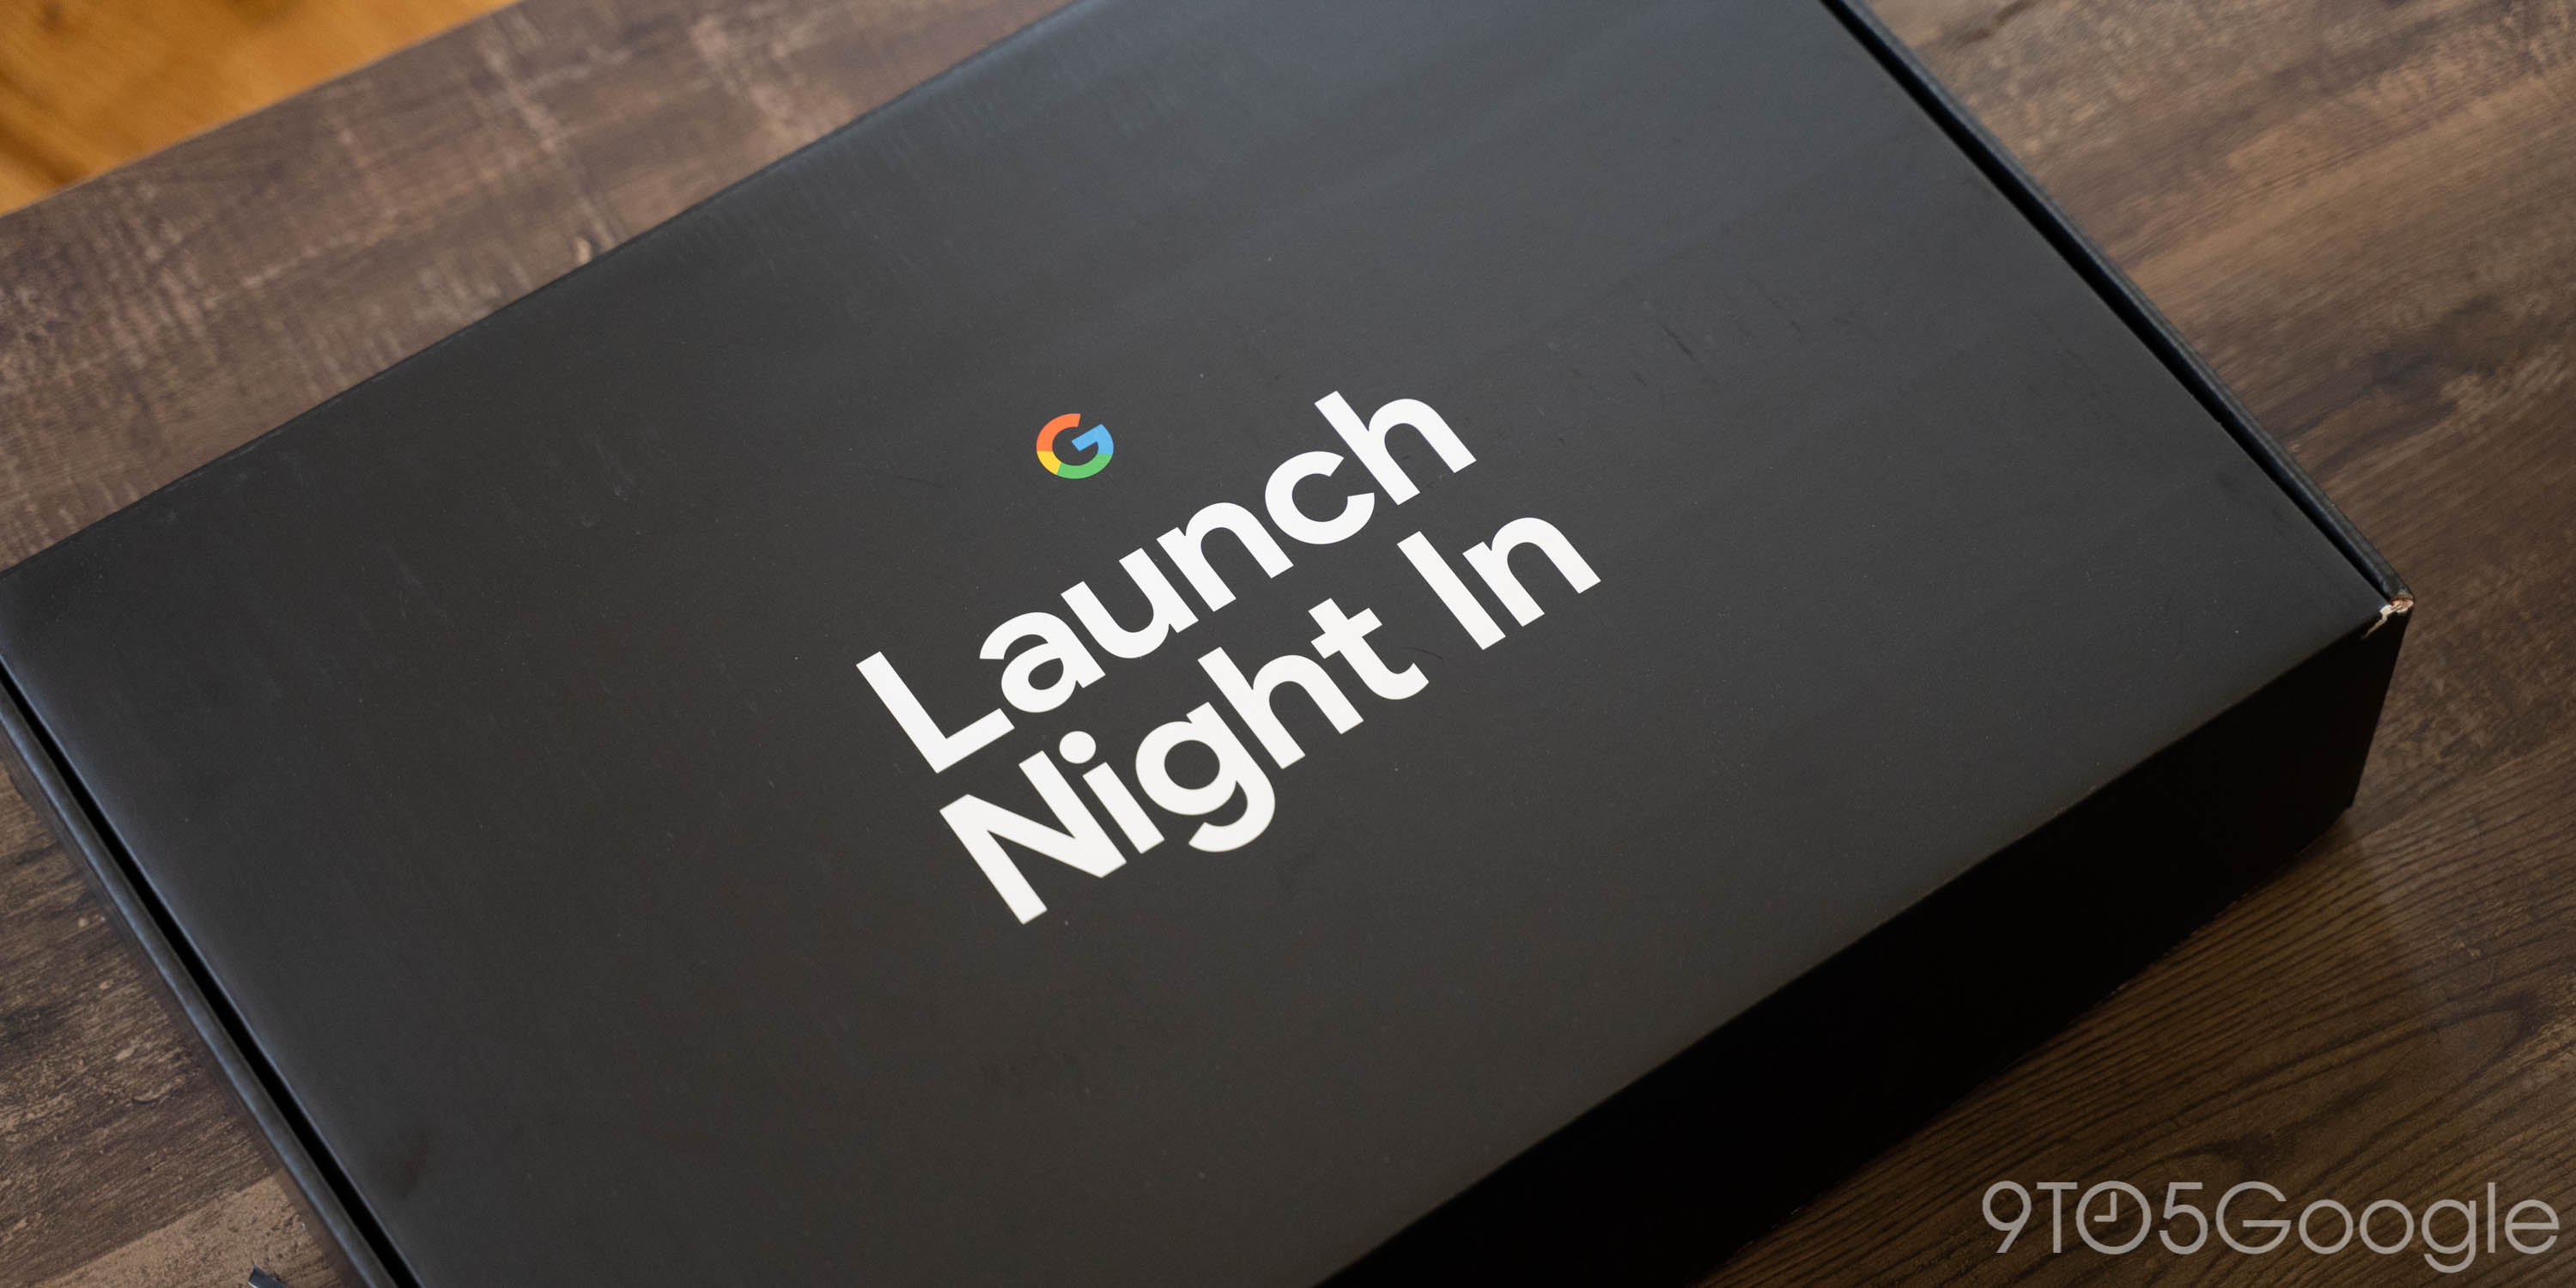 Unboxing and hands-on w/ Google's new Chromecast and Launch Night In kit [Video] thumbnail